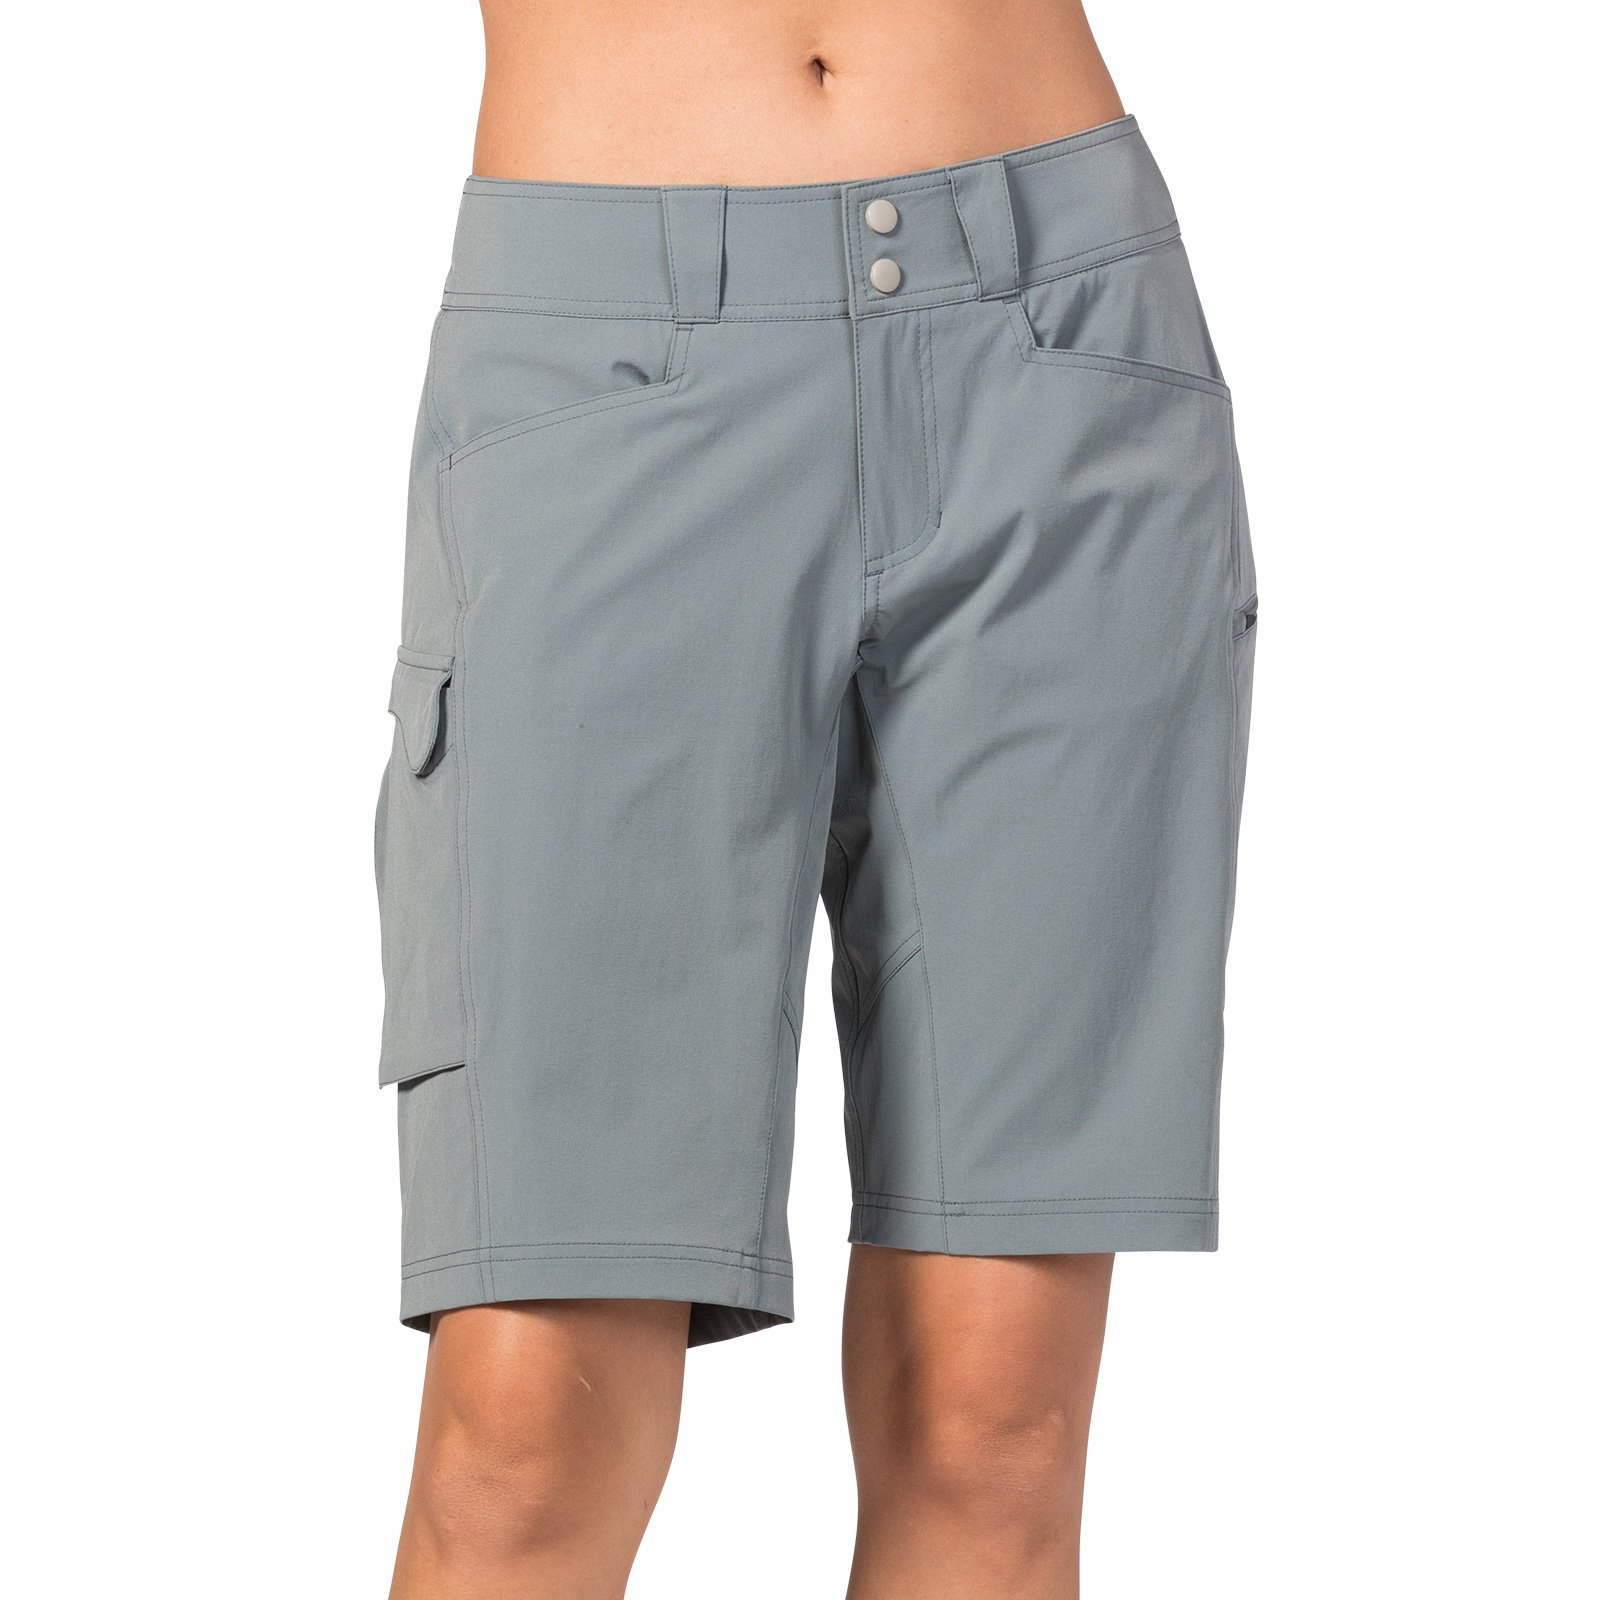 Terry Women's Metro Cycling Short Relaxed - Completely Restyled for 2018 - Carbon - Small